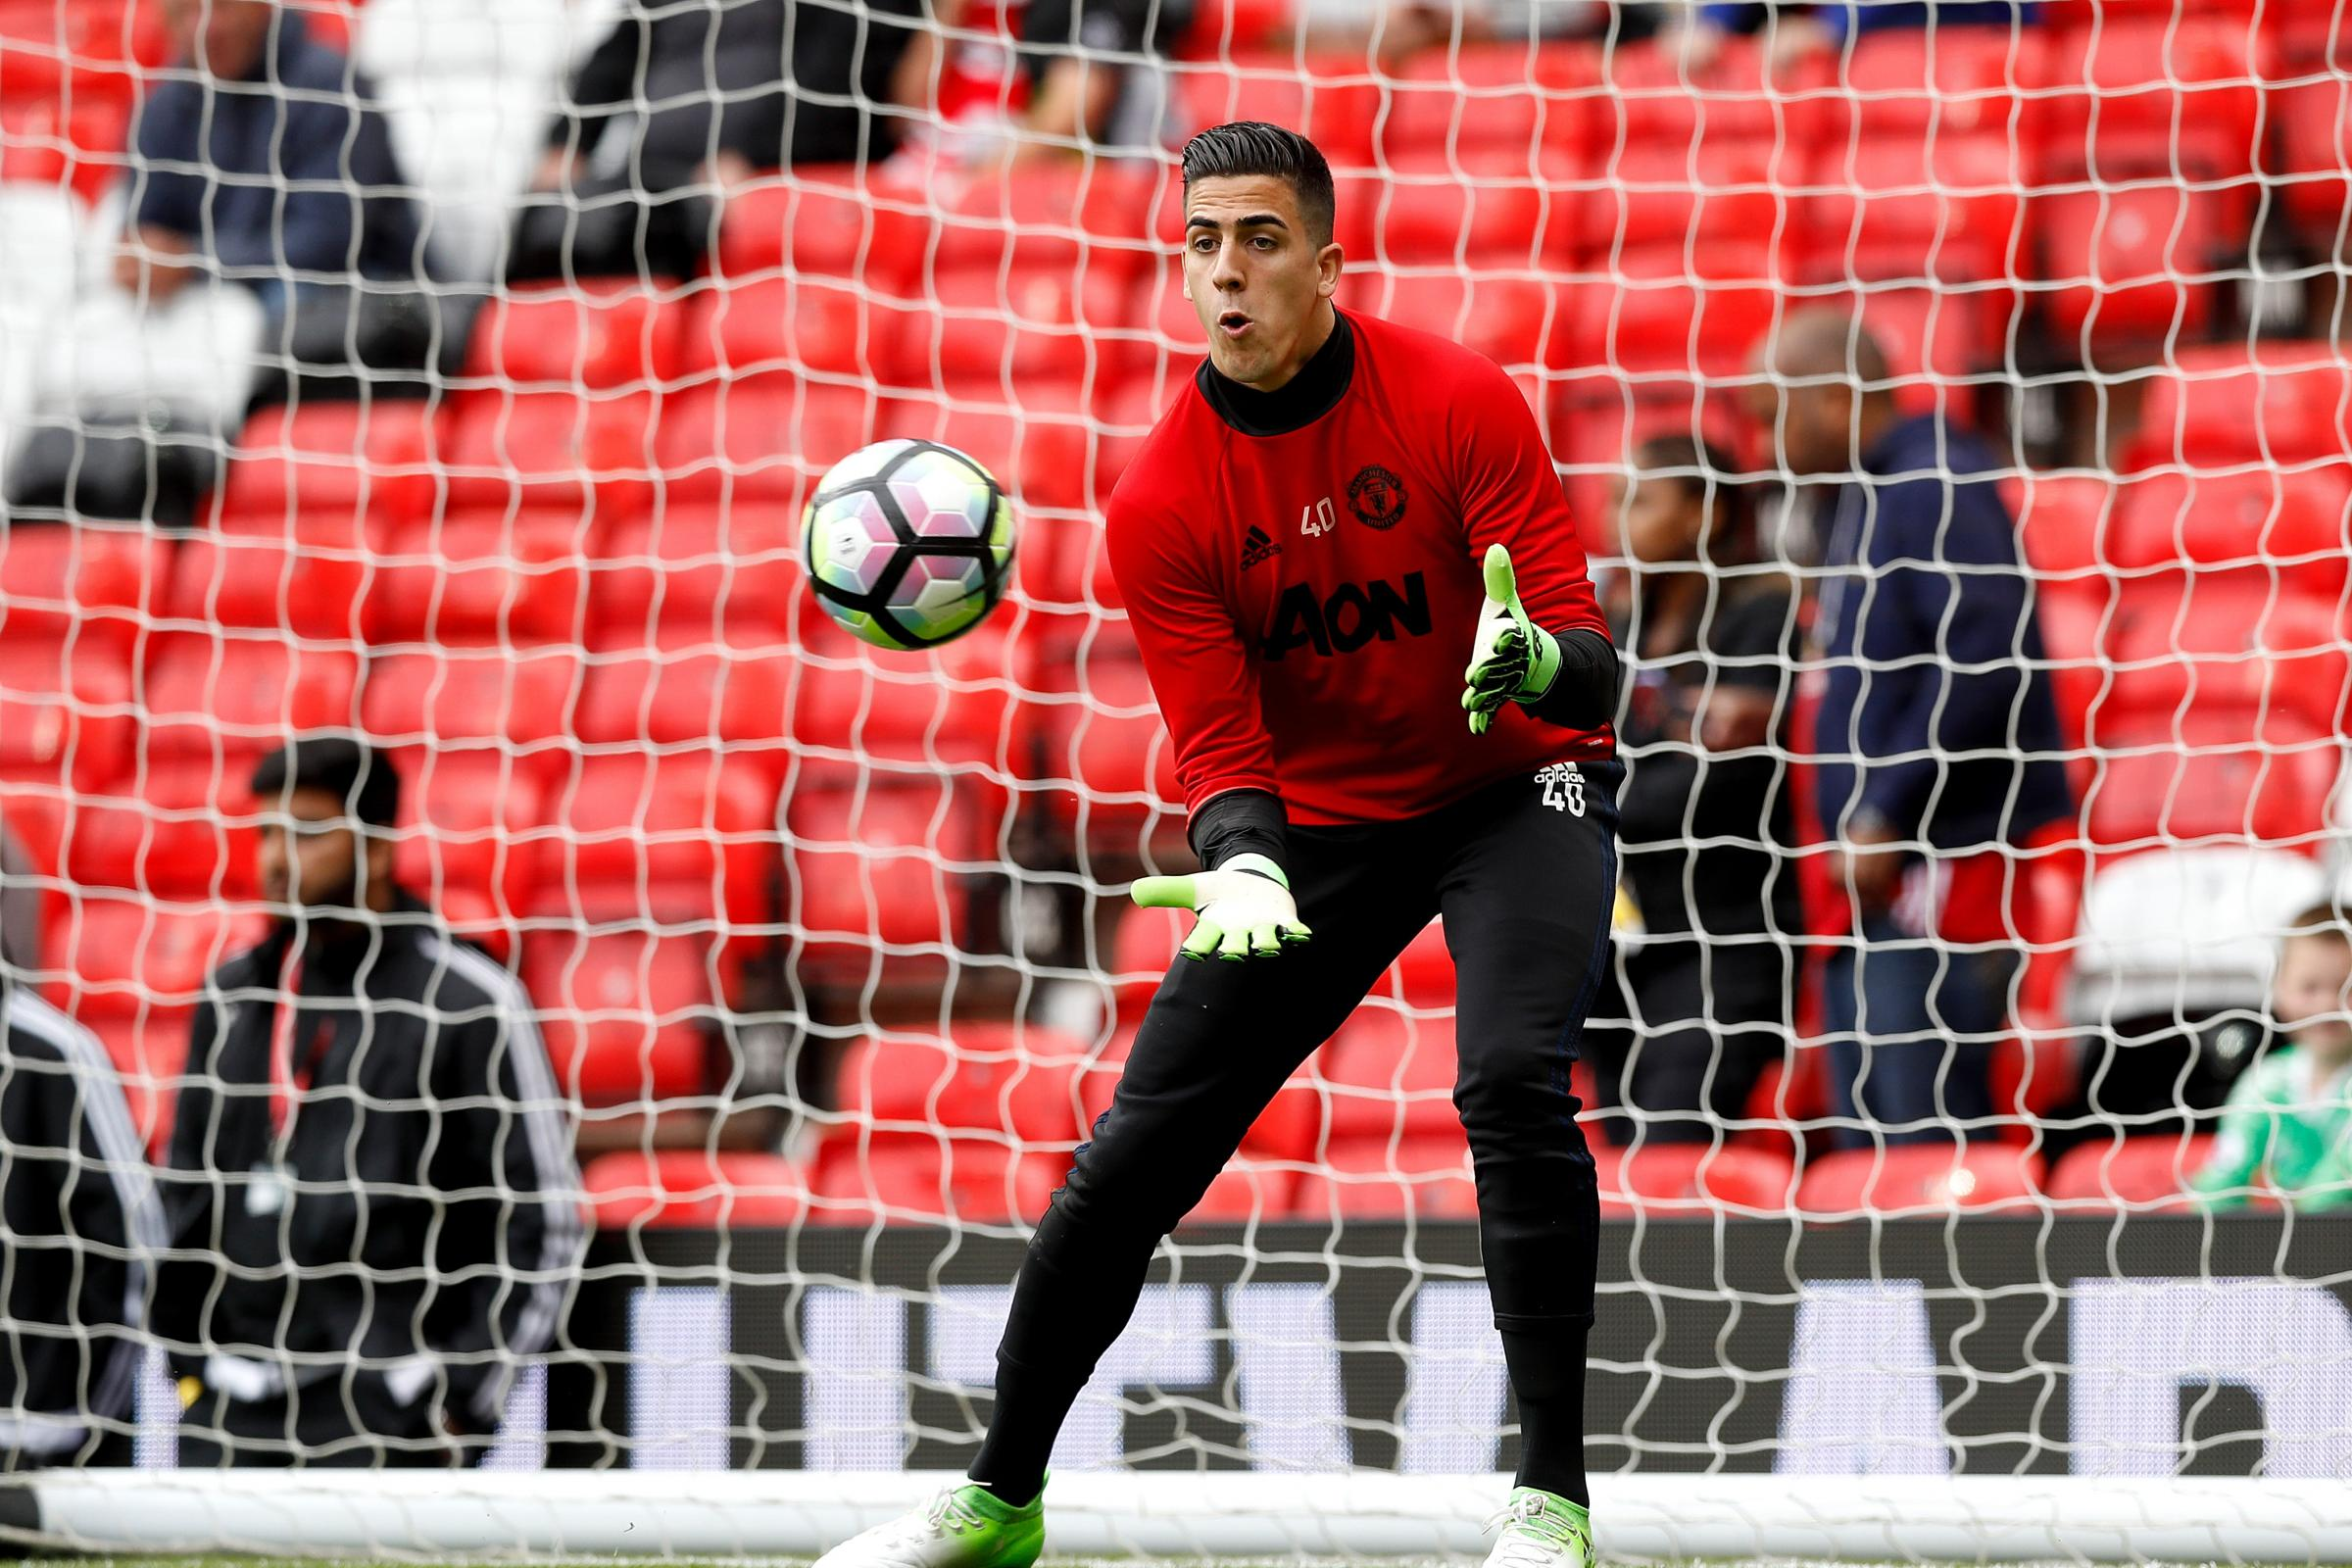 Manchester United's Joel Pereira joins Vitoria Setubal on loan